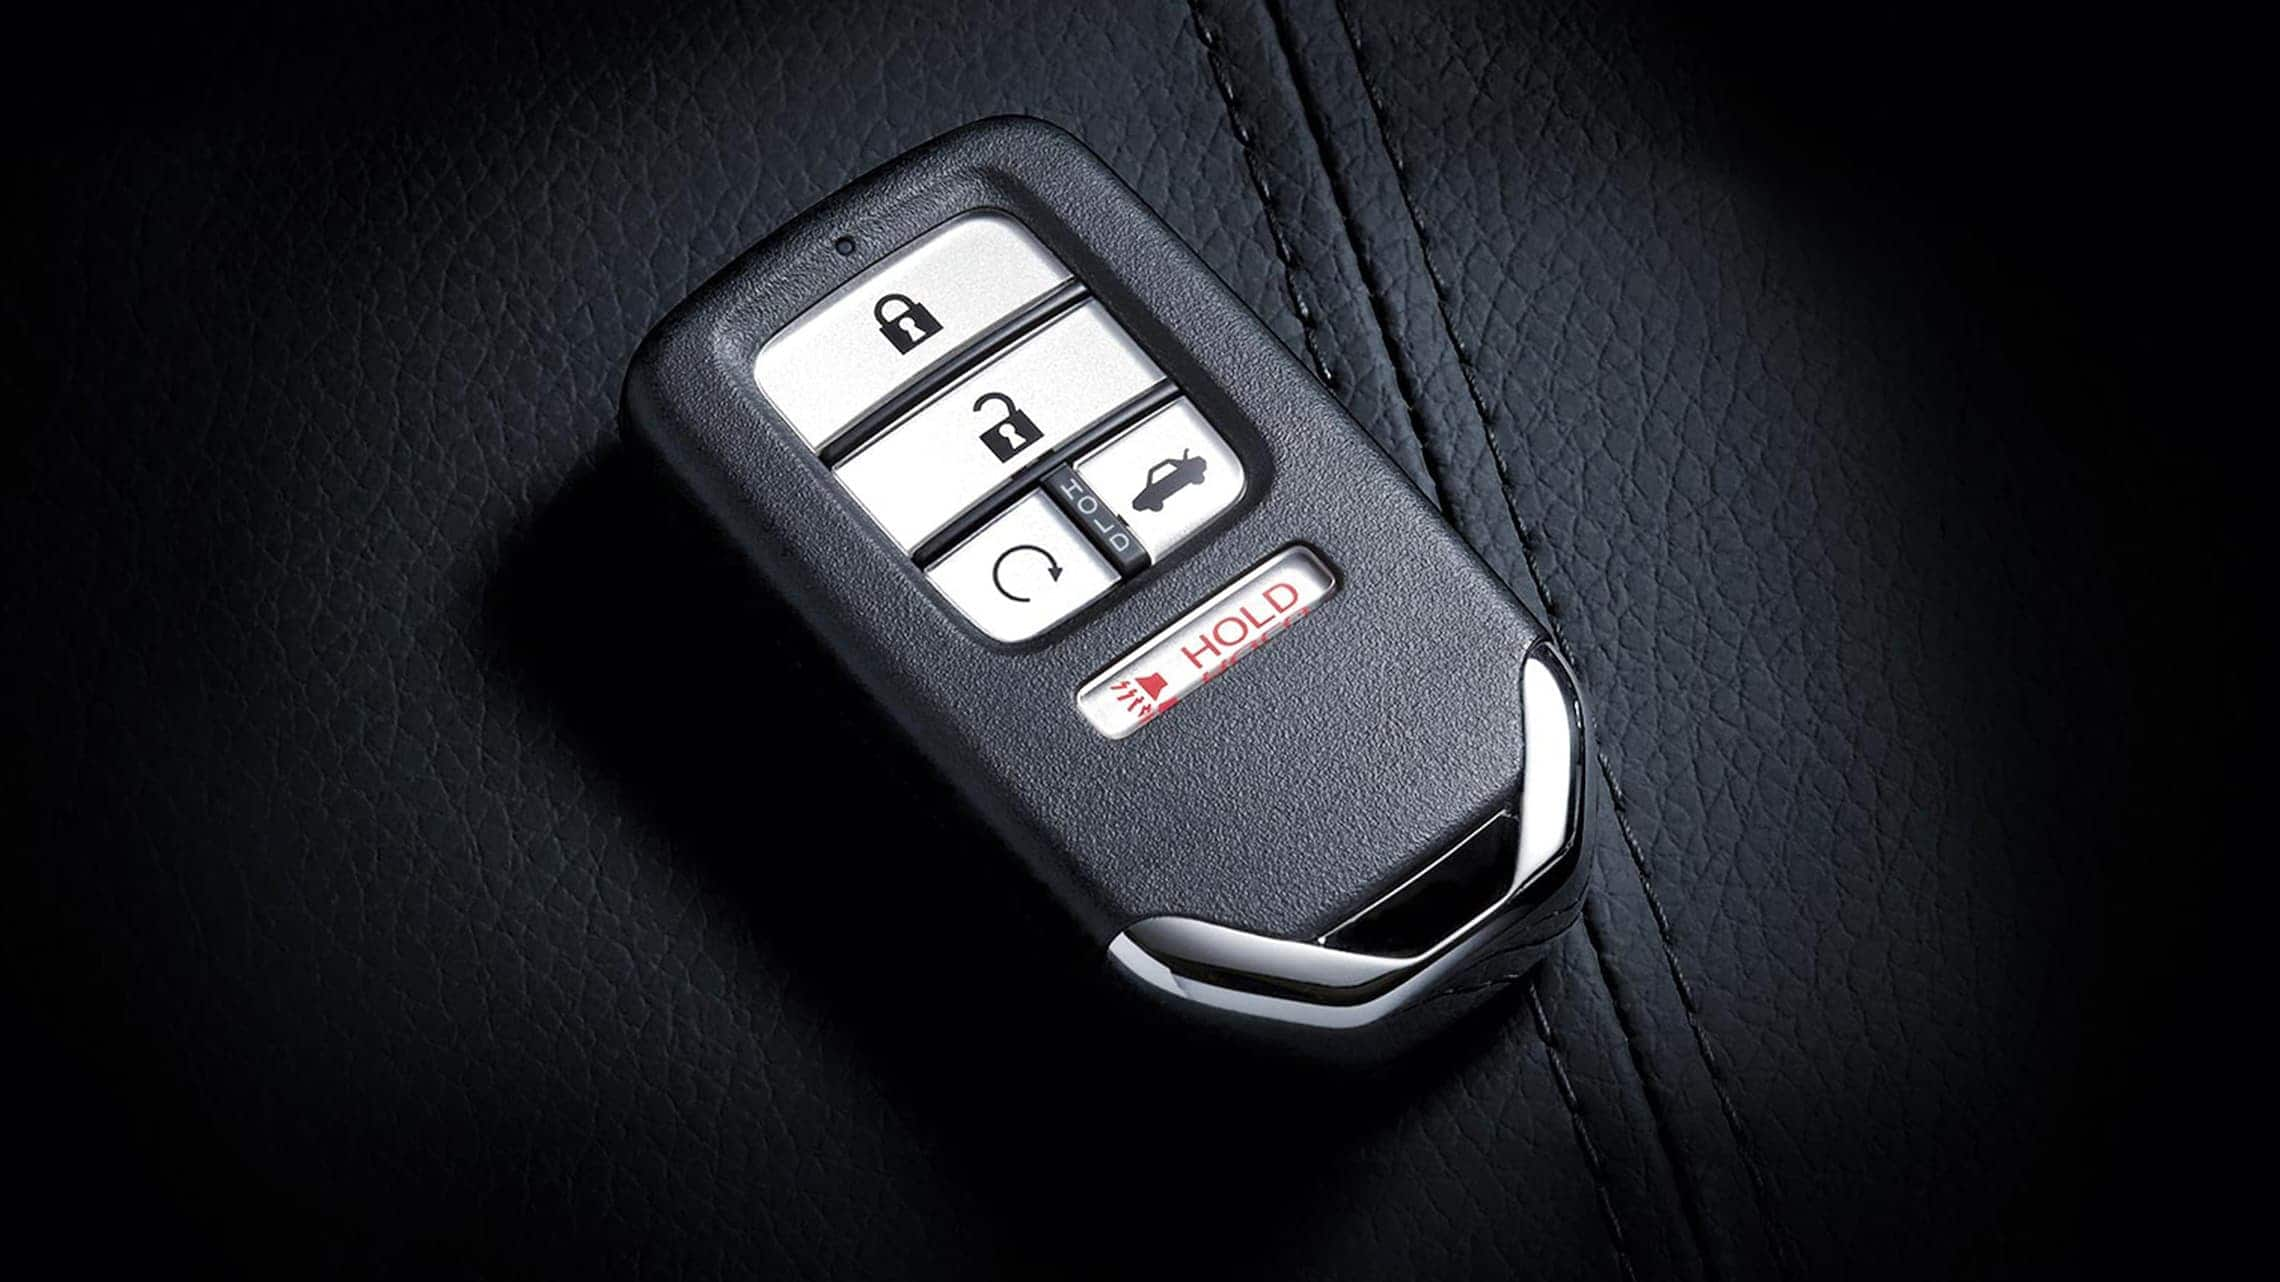 Remote engine start key fob detail for the 2020 Honda Civic Sedan.